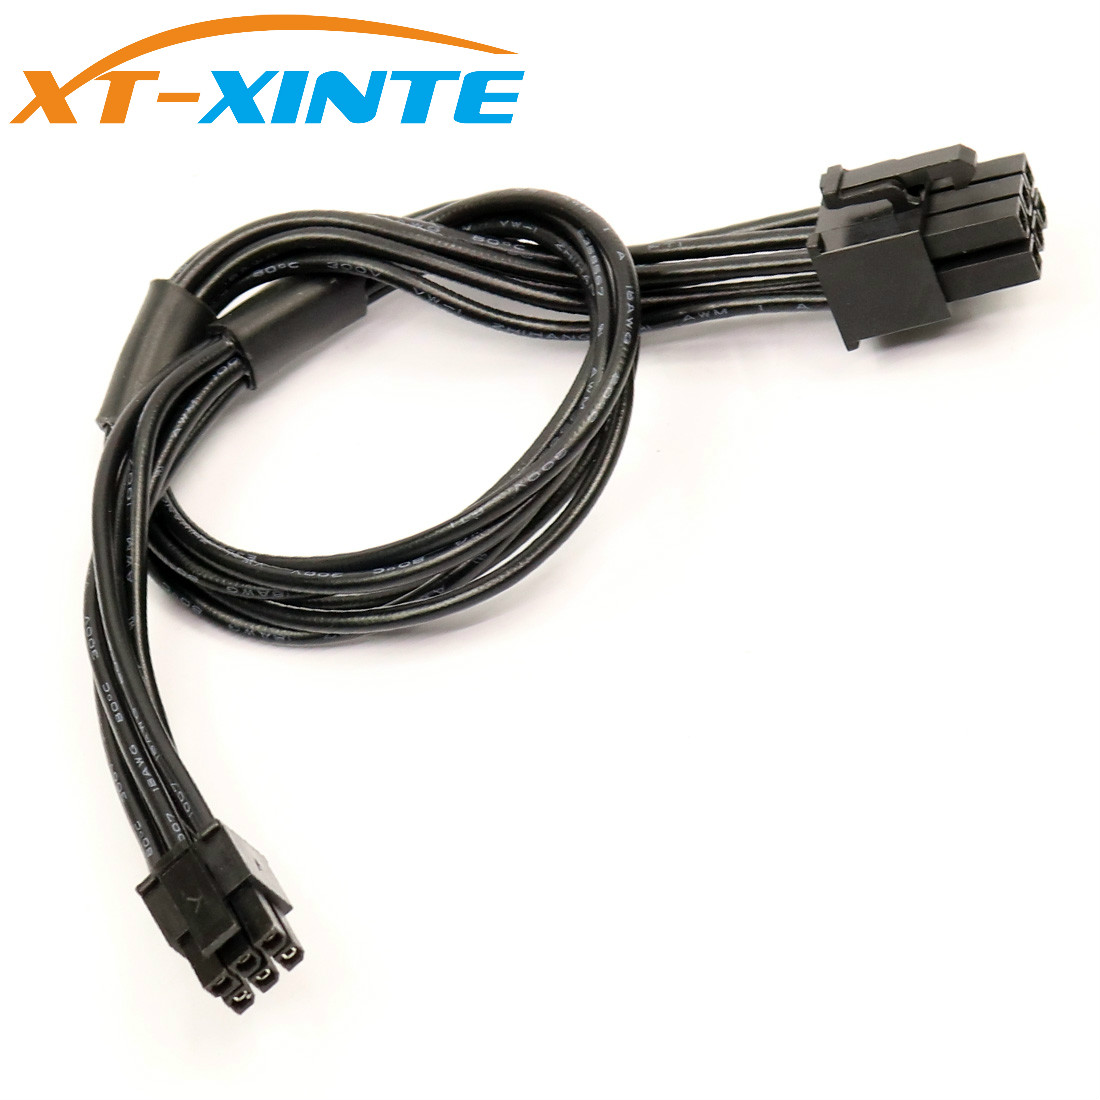 XT-XINTE Mini 6Pin To PCI-E 6PIN Power Cable Graphics Video Card Cord 30cm Connector Wire For Mac Pro G5 Macbook